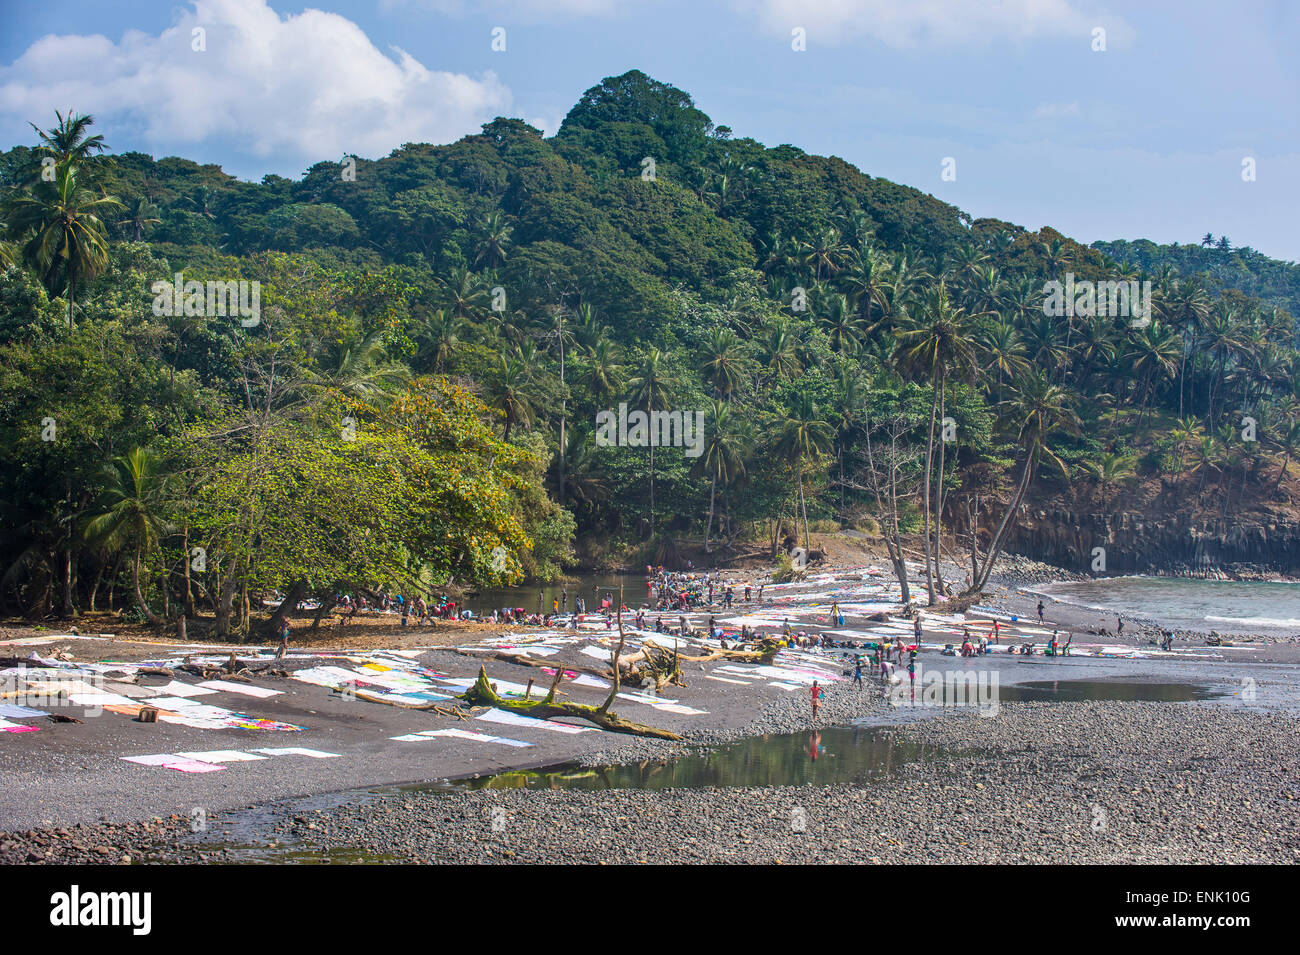 Wet clothes drying on a rocky beach, east coast of Sao Tome, Sao Tome and Principe, Atlantic Ocean, Africa - Stock Image